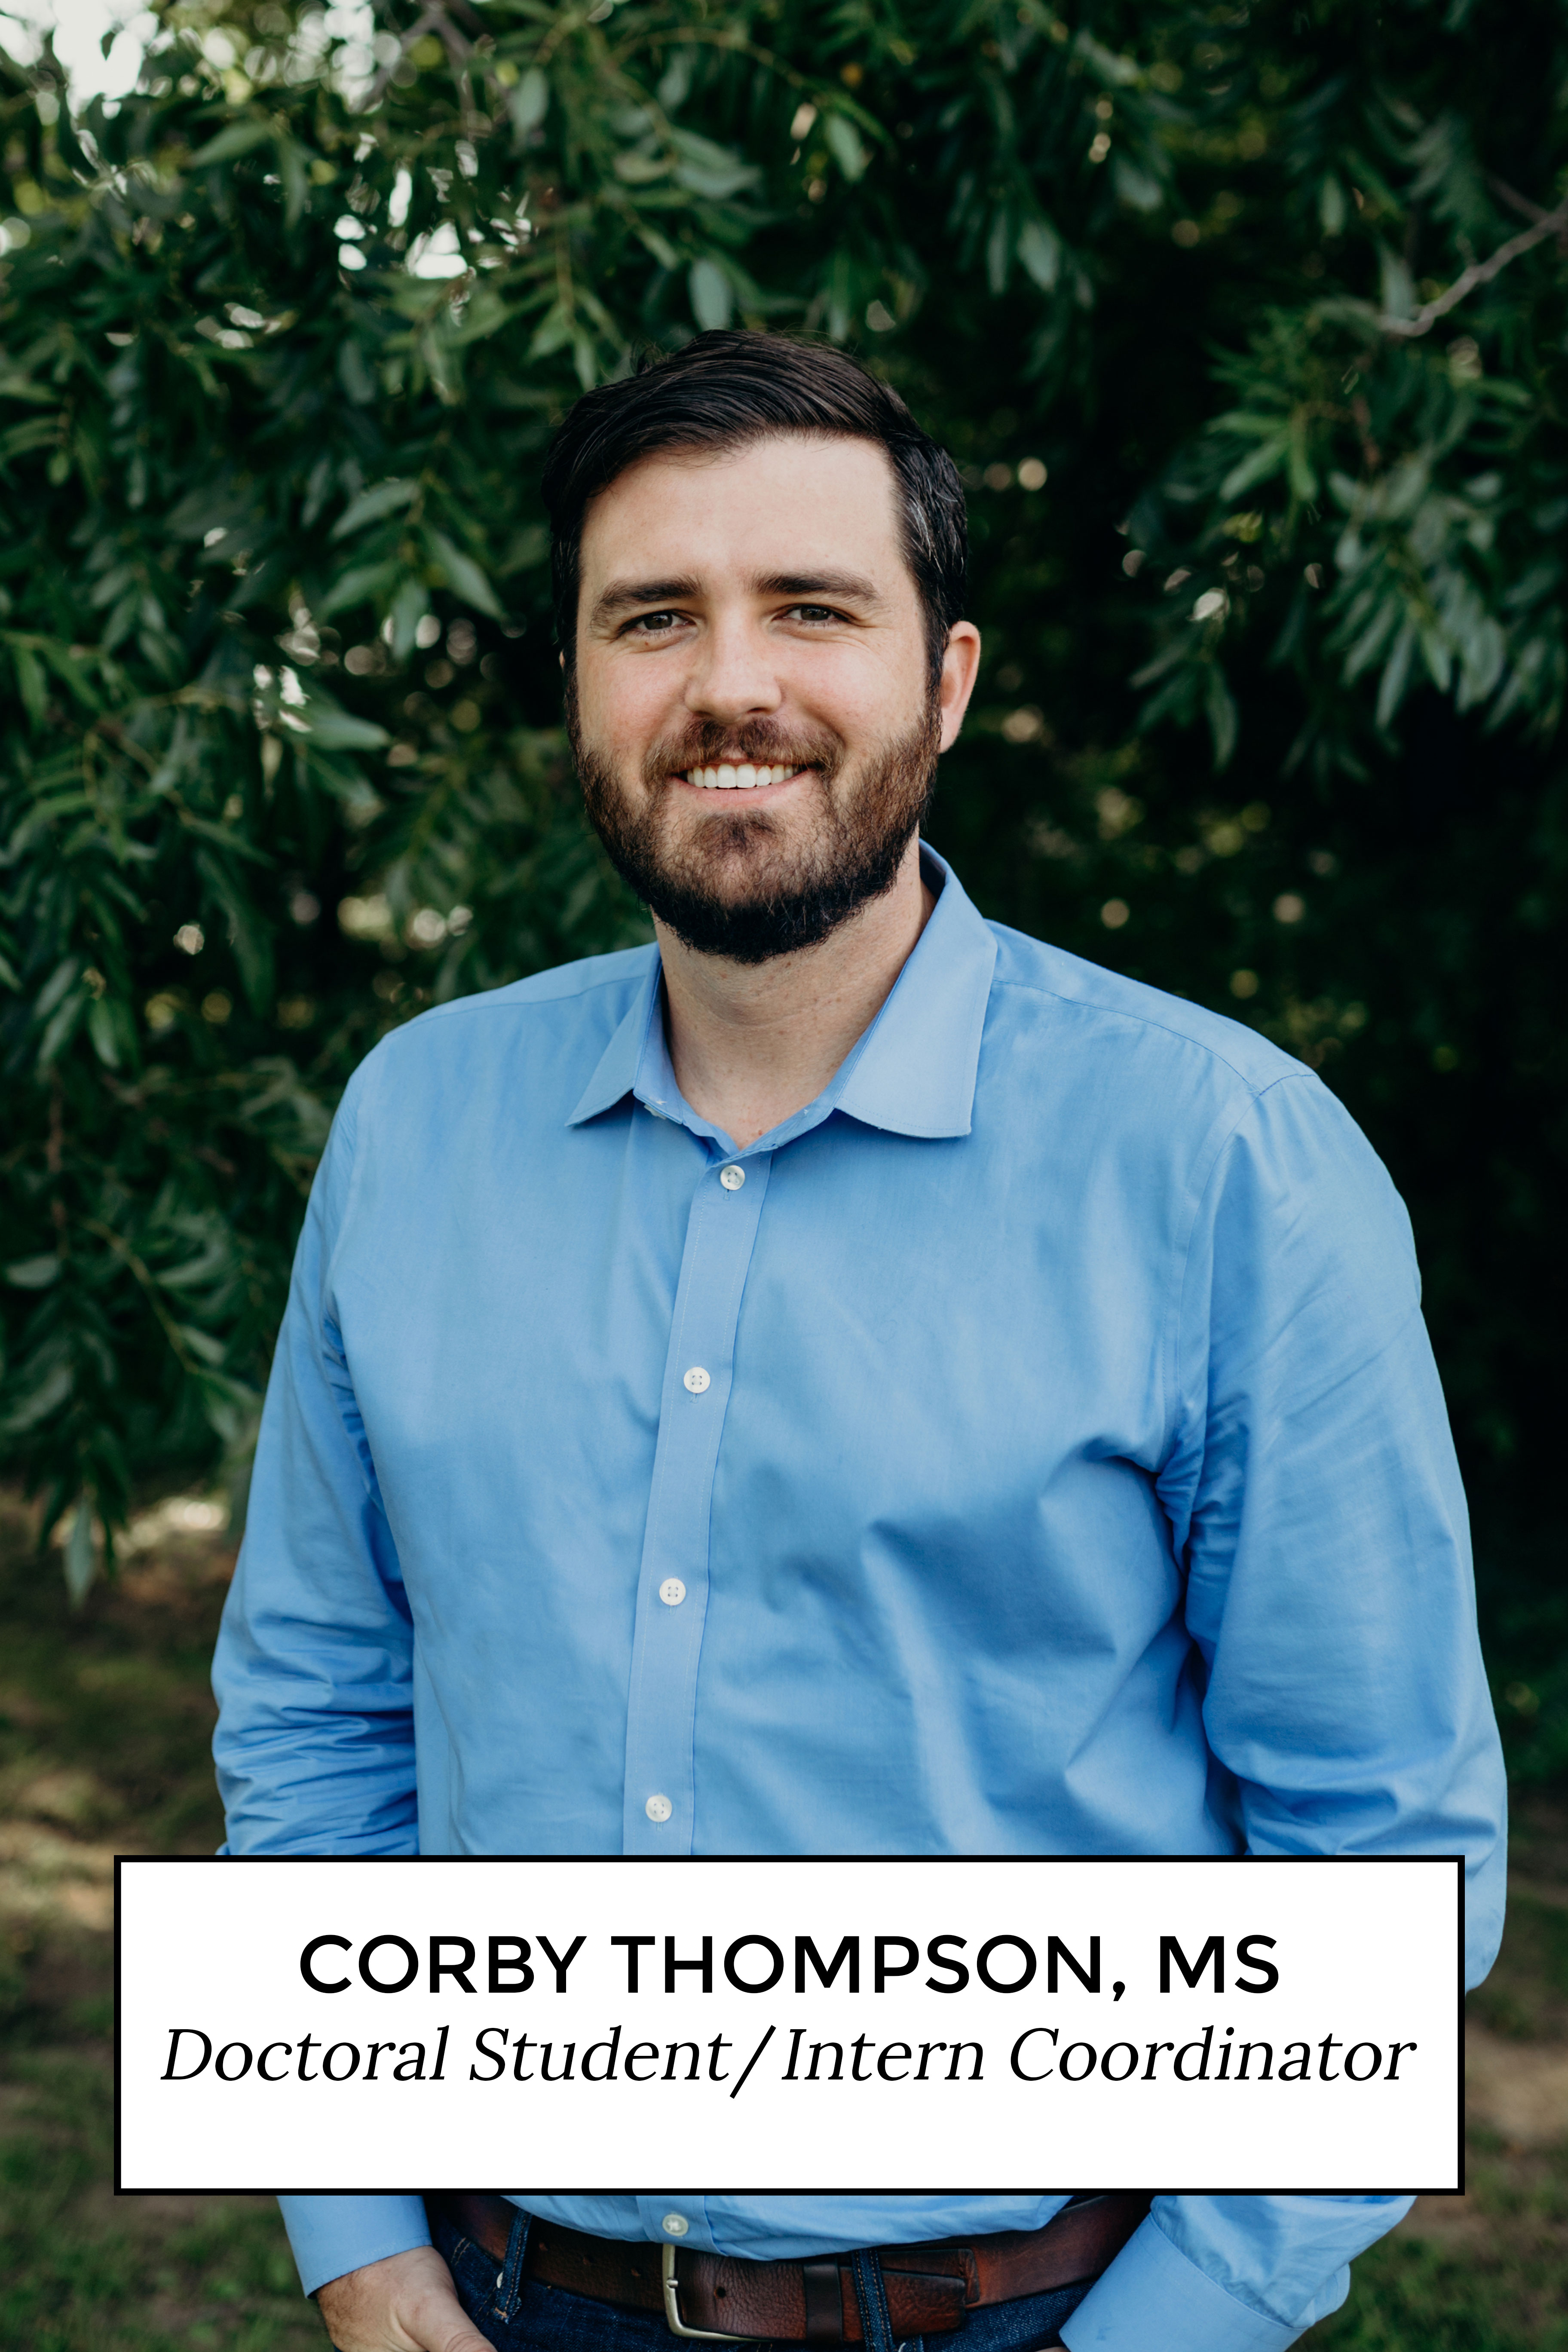 Corby Thompson, MS - Doctoral Student/Intern Coordinator